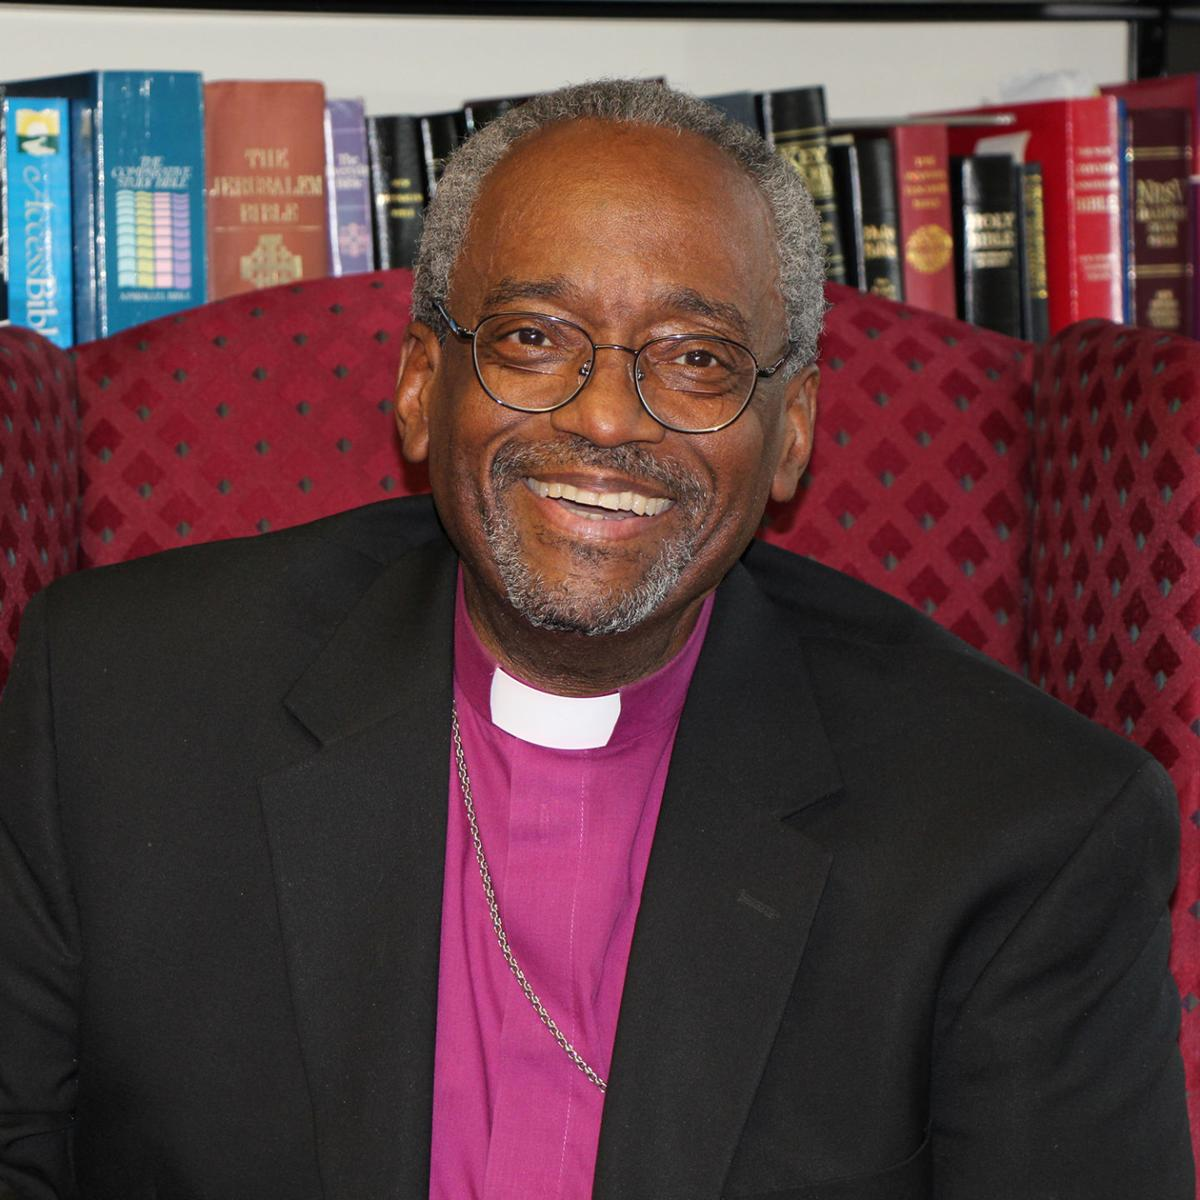 Bishop Michael Curry of the Episcopal Diocense of NC